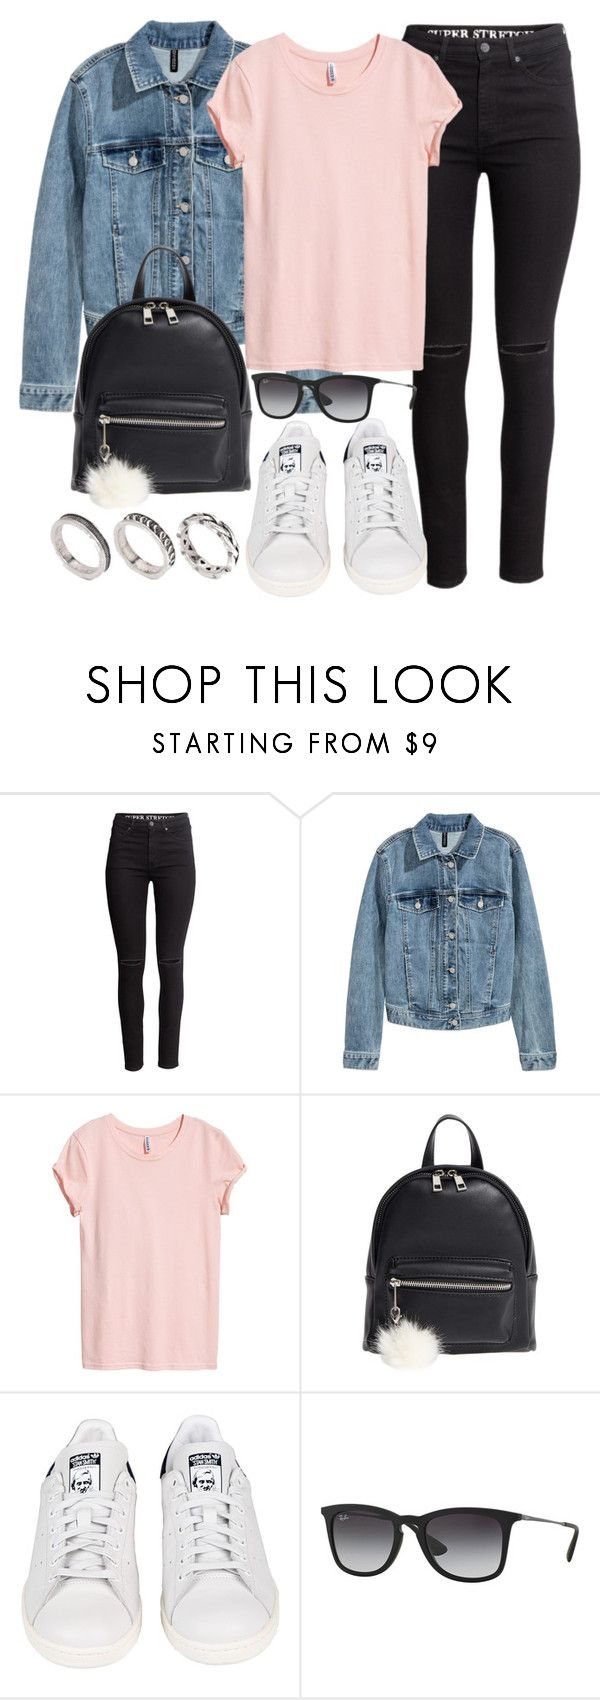 """Sin título #13231"" by vany-alvarado ❤ liked on Polyvore featuring H&M, BP., adidas, Ray-Ban and ASOS"